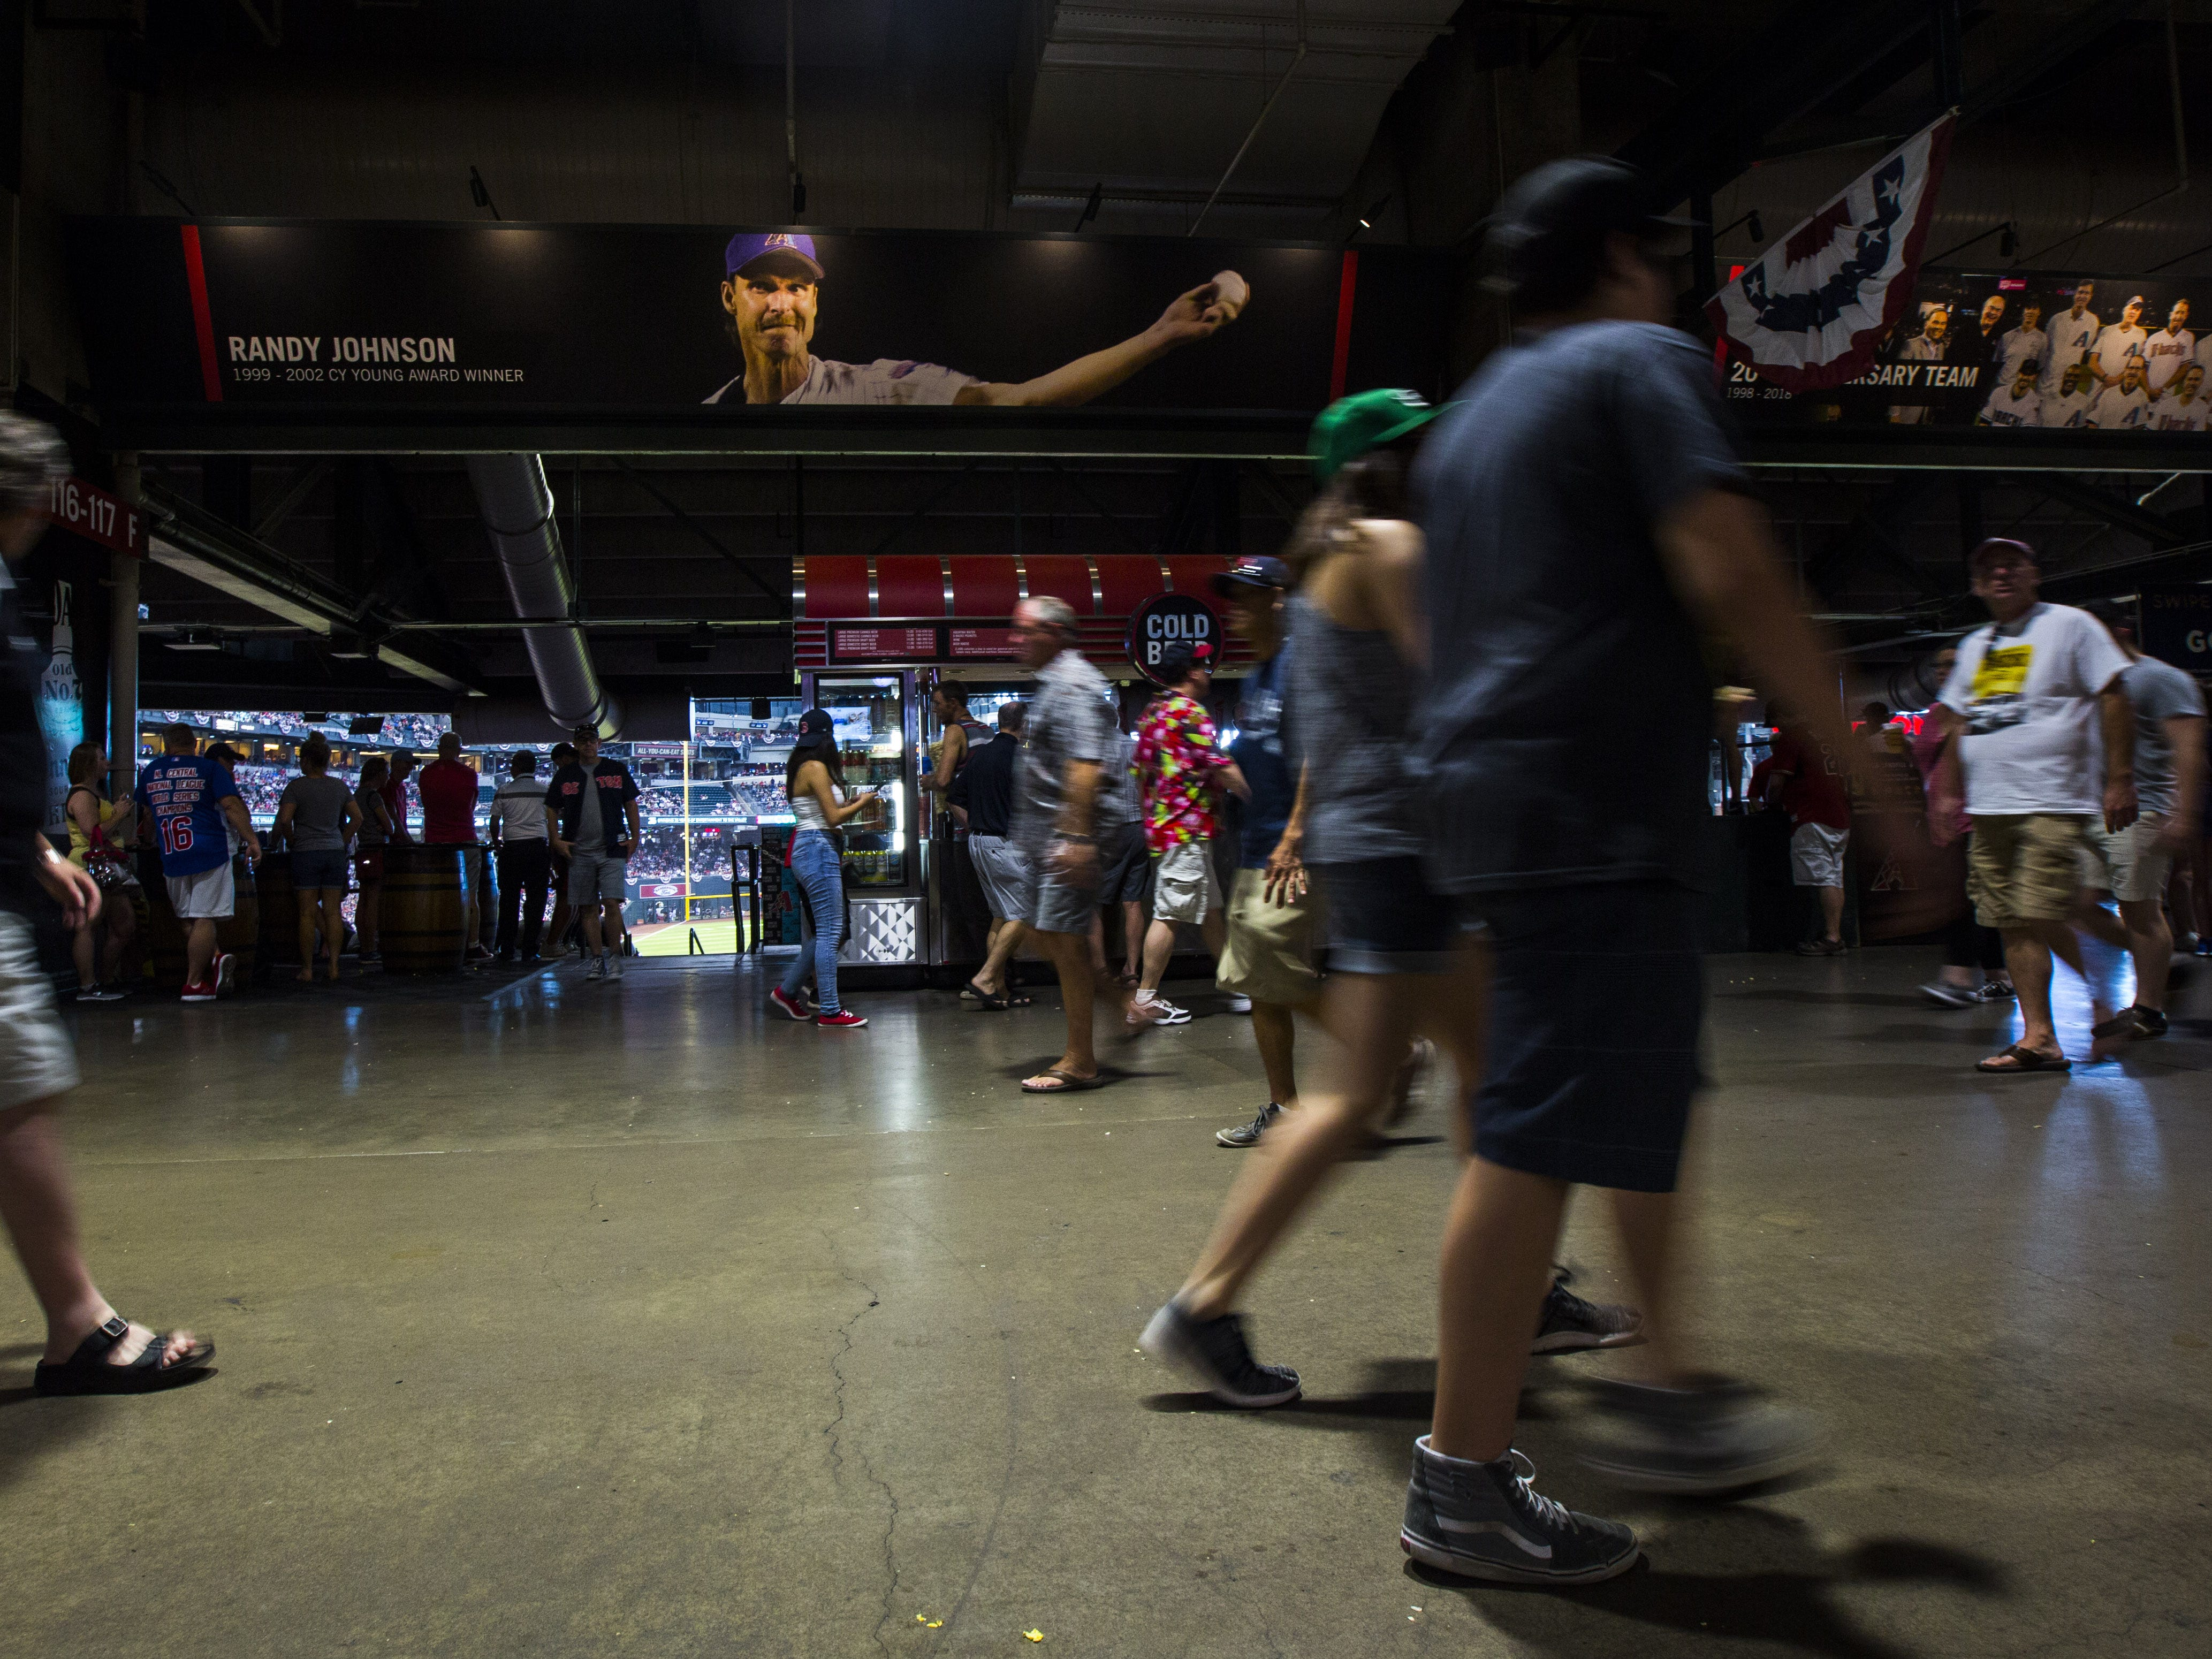 Fans make their way through the concourse level of Chase Field during the seventh inning of a Diamondbacks vs. Red Sox game in Phoenix, Ariz. on April 7, 2019.